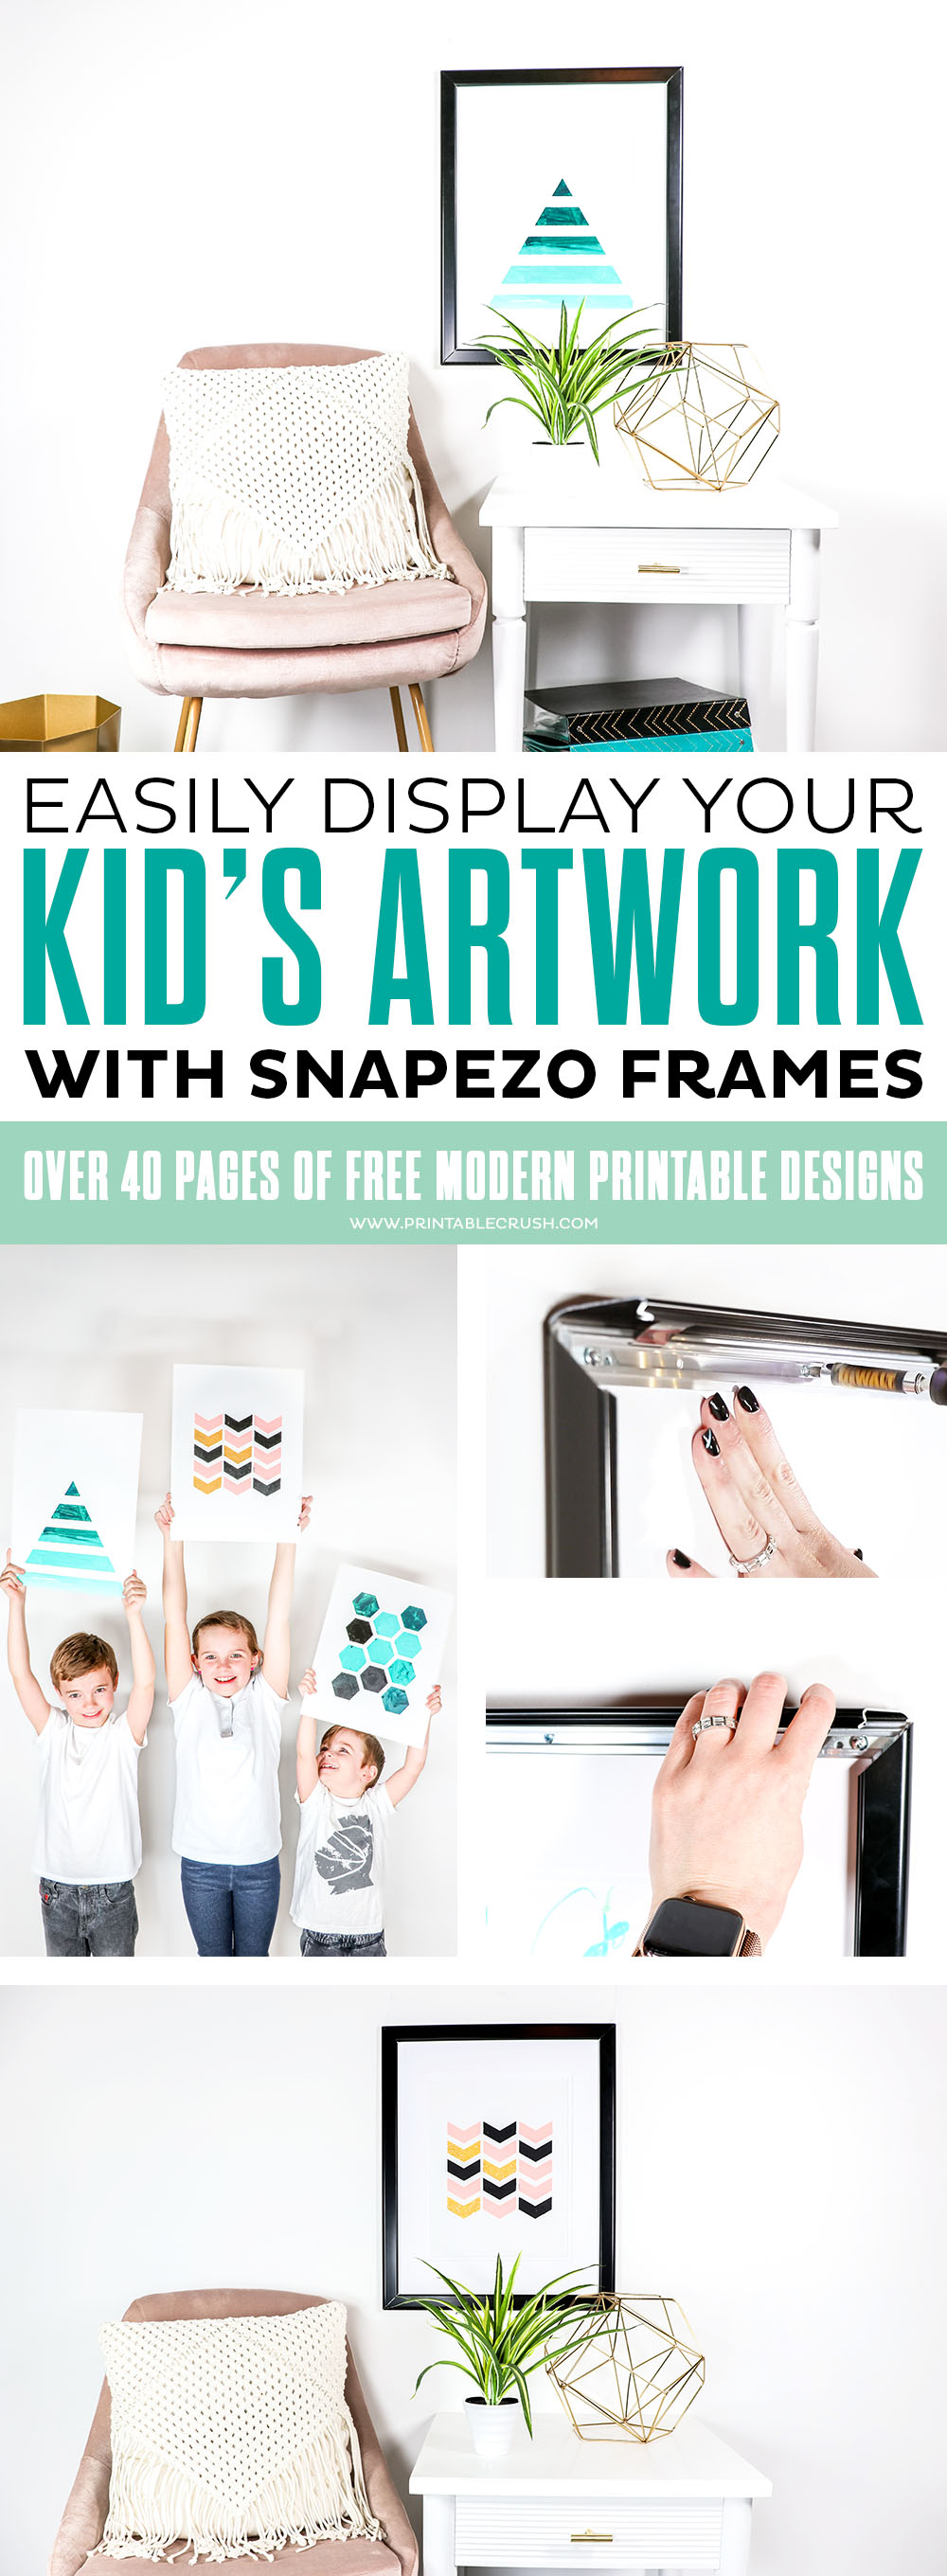 Easily switch out kid artwork with Snapezo frames - these would also be great to display and switch out schedules, printable artwork and family pictures! #snapezoframes #snapezo #kidartwork #diykidartwork #easykidactivity #moderndecor #modernhomedecor